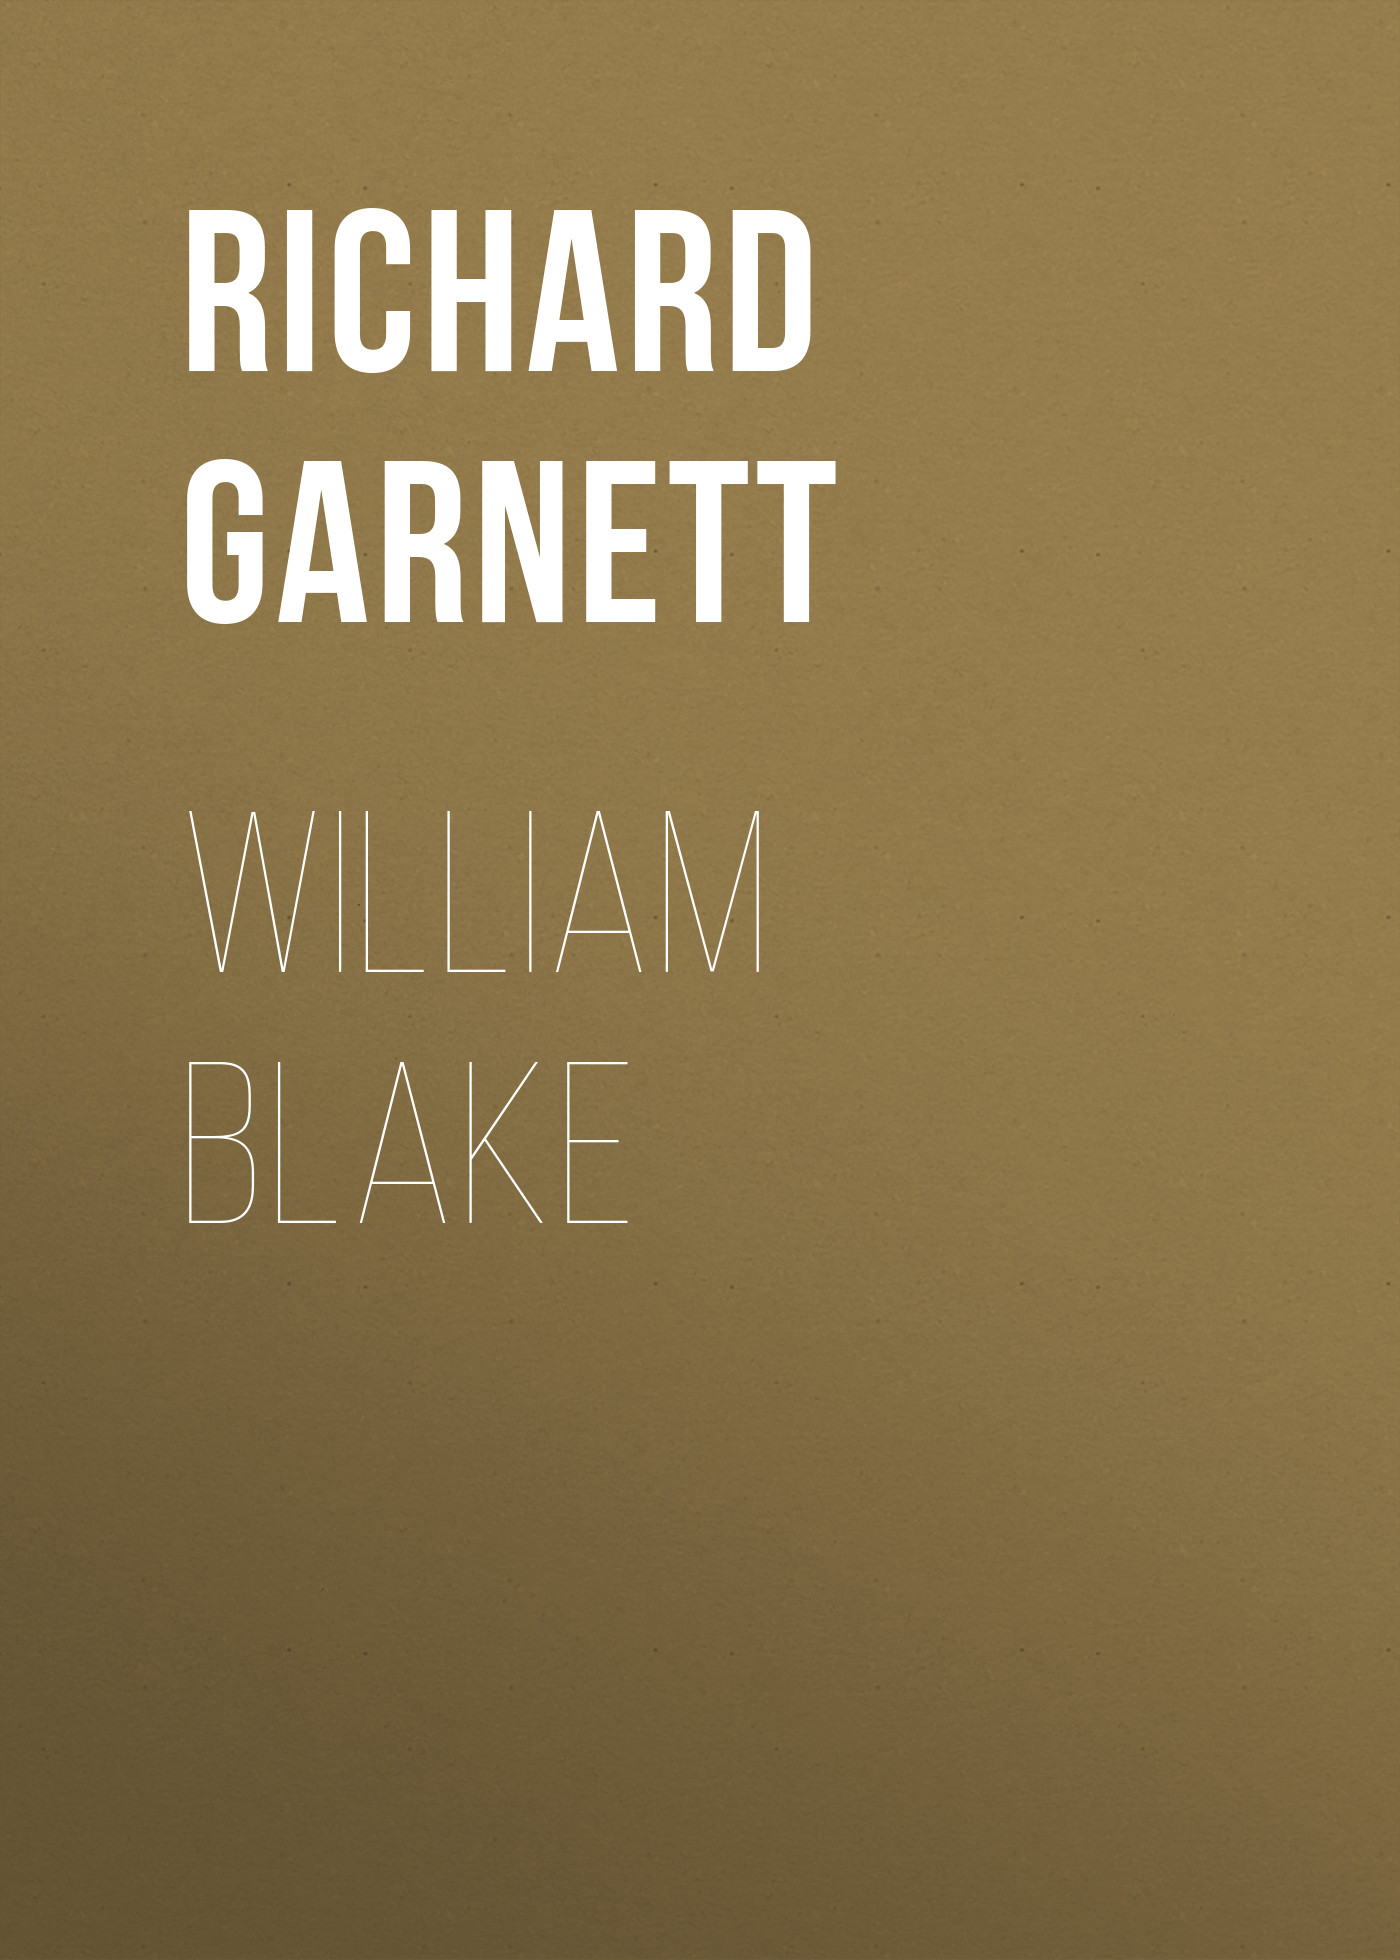 Richard Garnett William Blake blake william blake s poetry